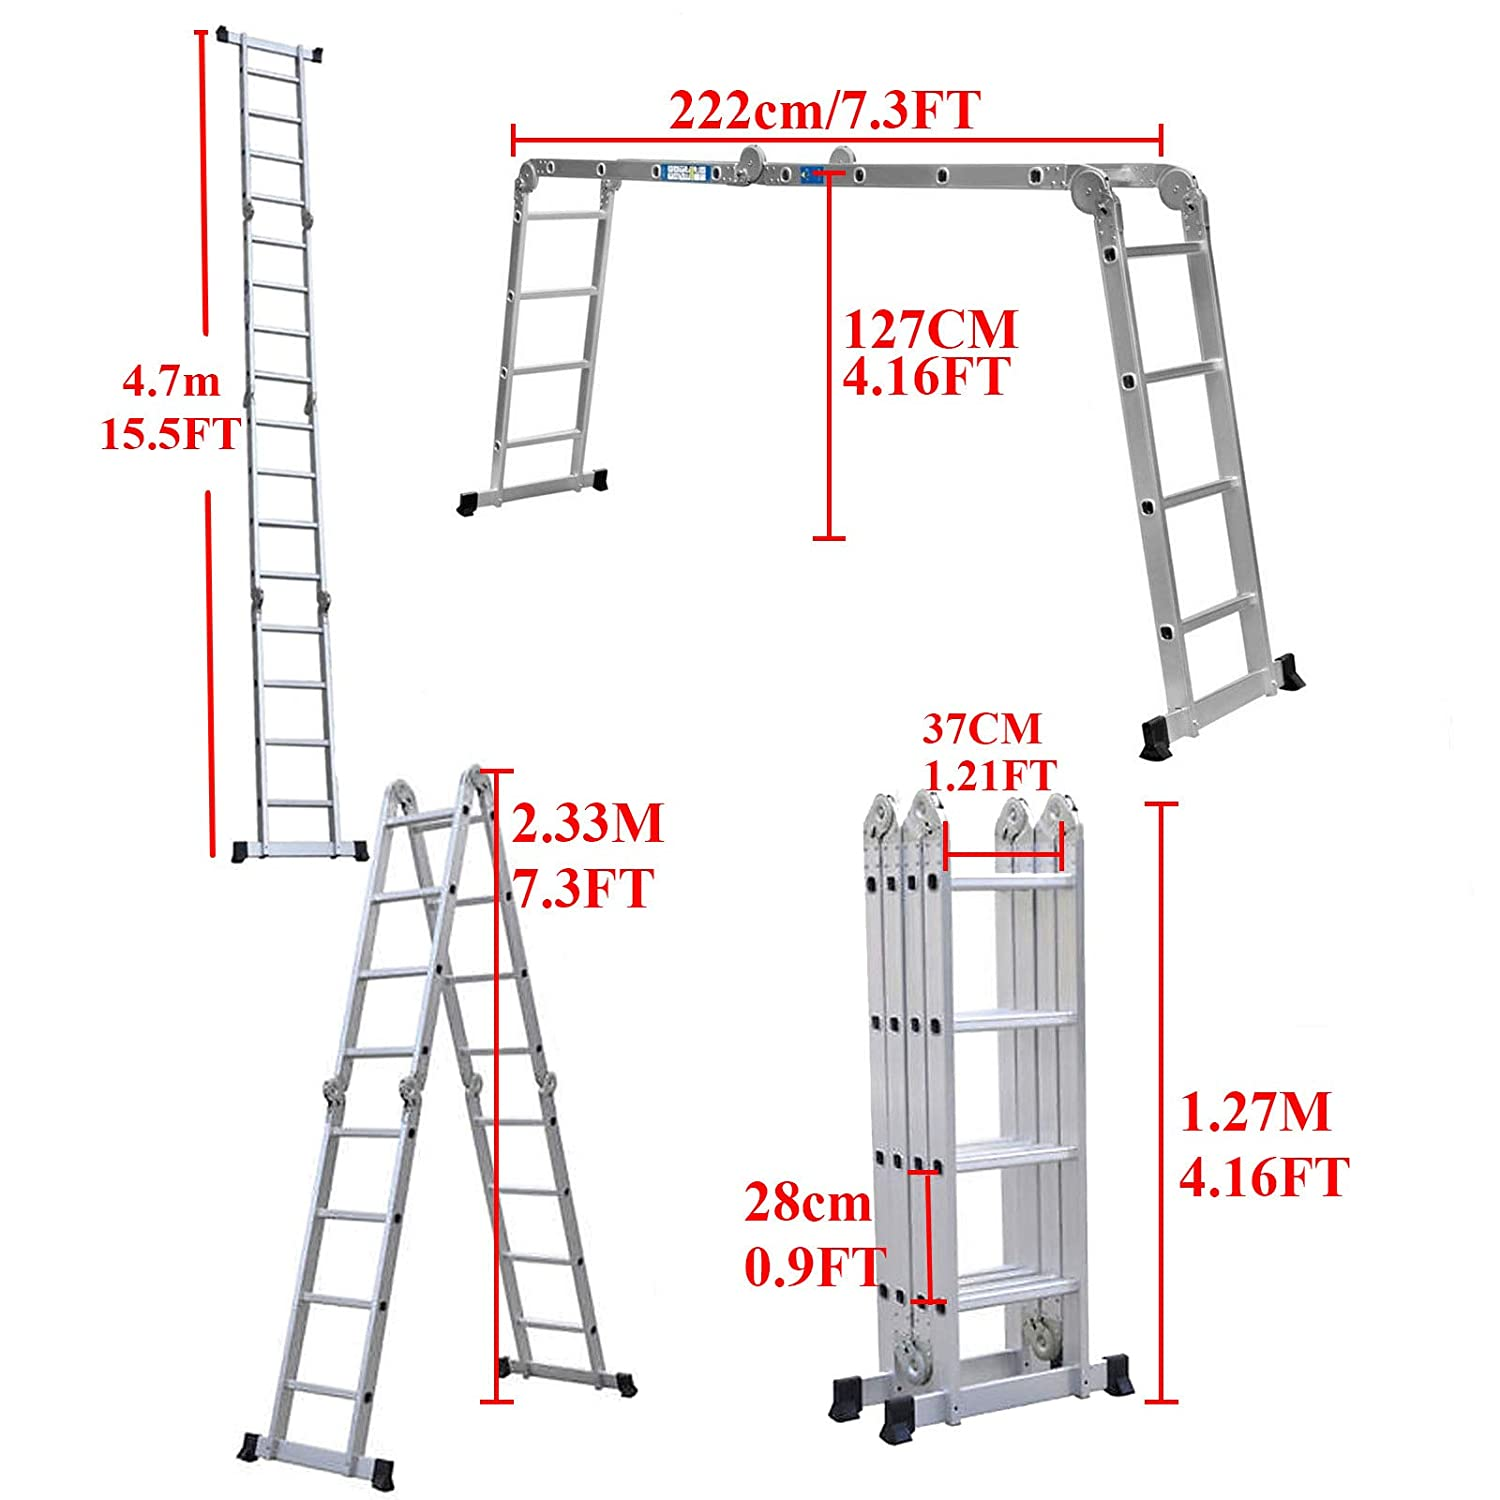 330lb ZhanGe Adjustable Aluminum Lightweight Ladder 10.5FT Telescopic Telescoping Folding Tall Portable Climb Home Extension Ladder Compact Multi-Purpose Straight Collapsible Ladder Max.Load 150kg